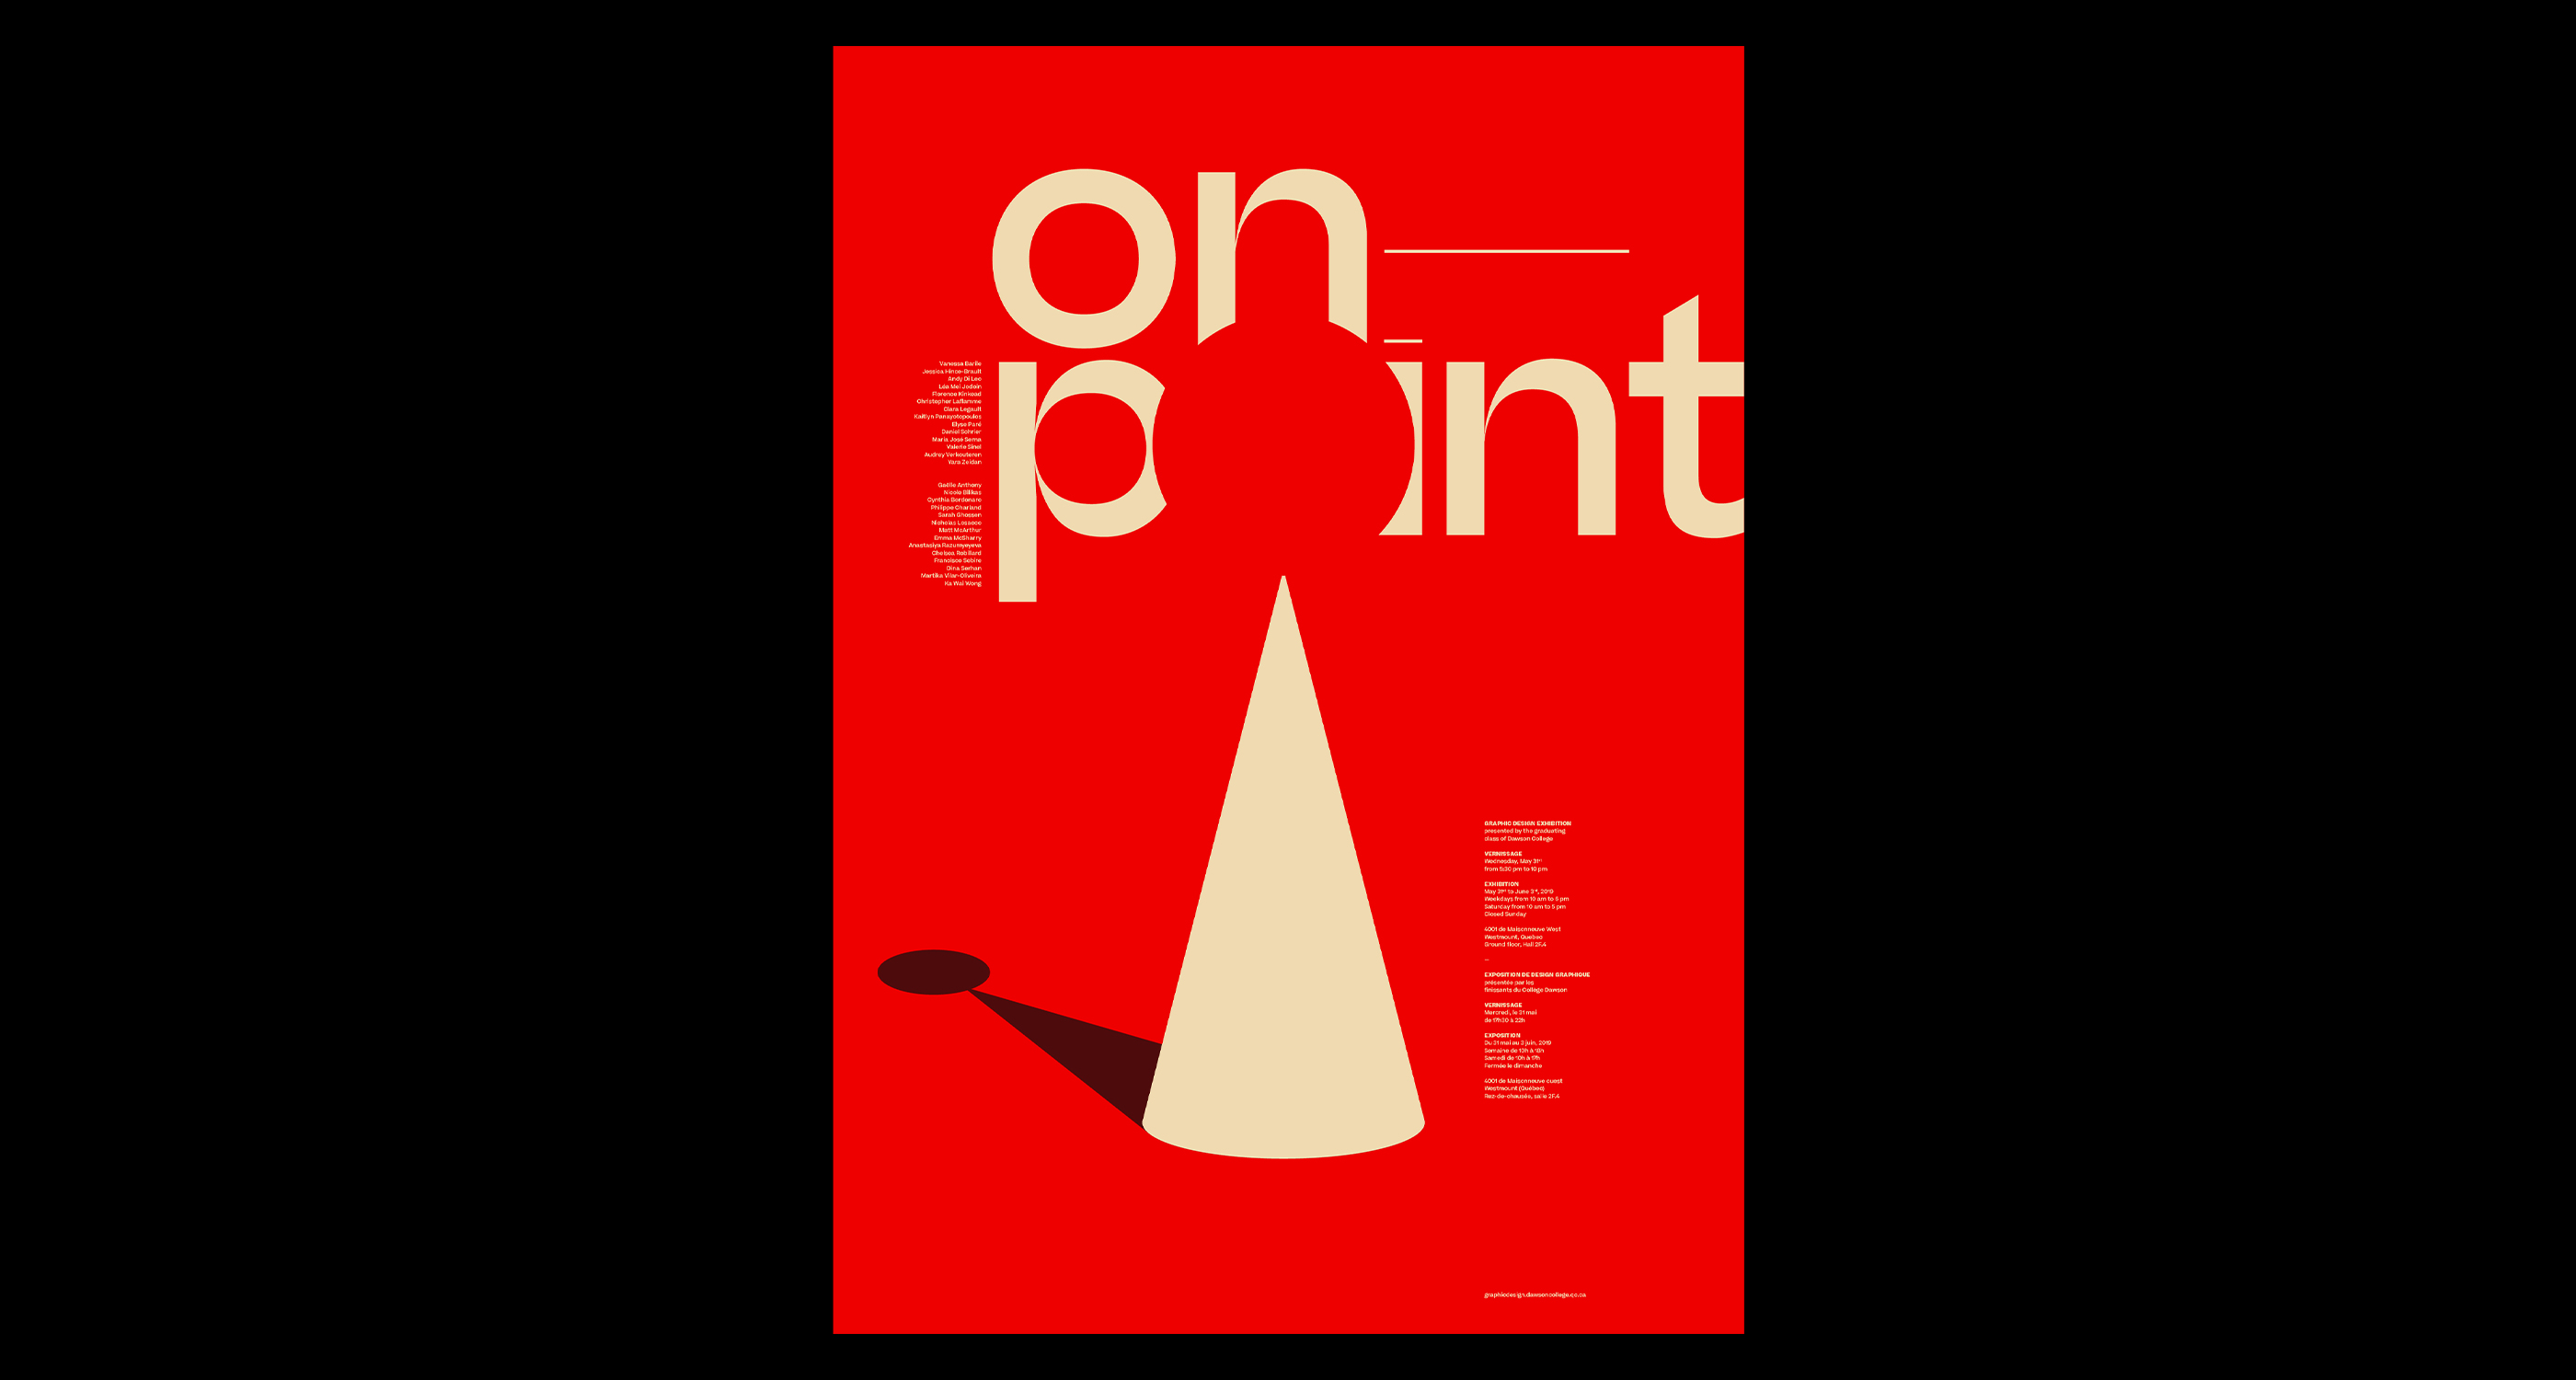 On Point Poster